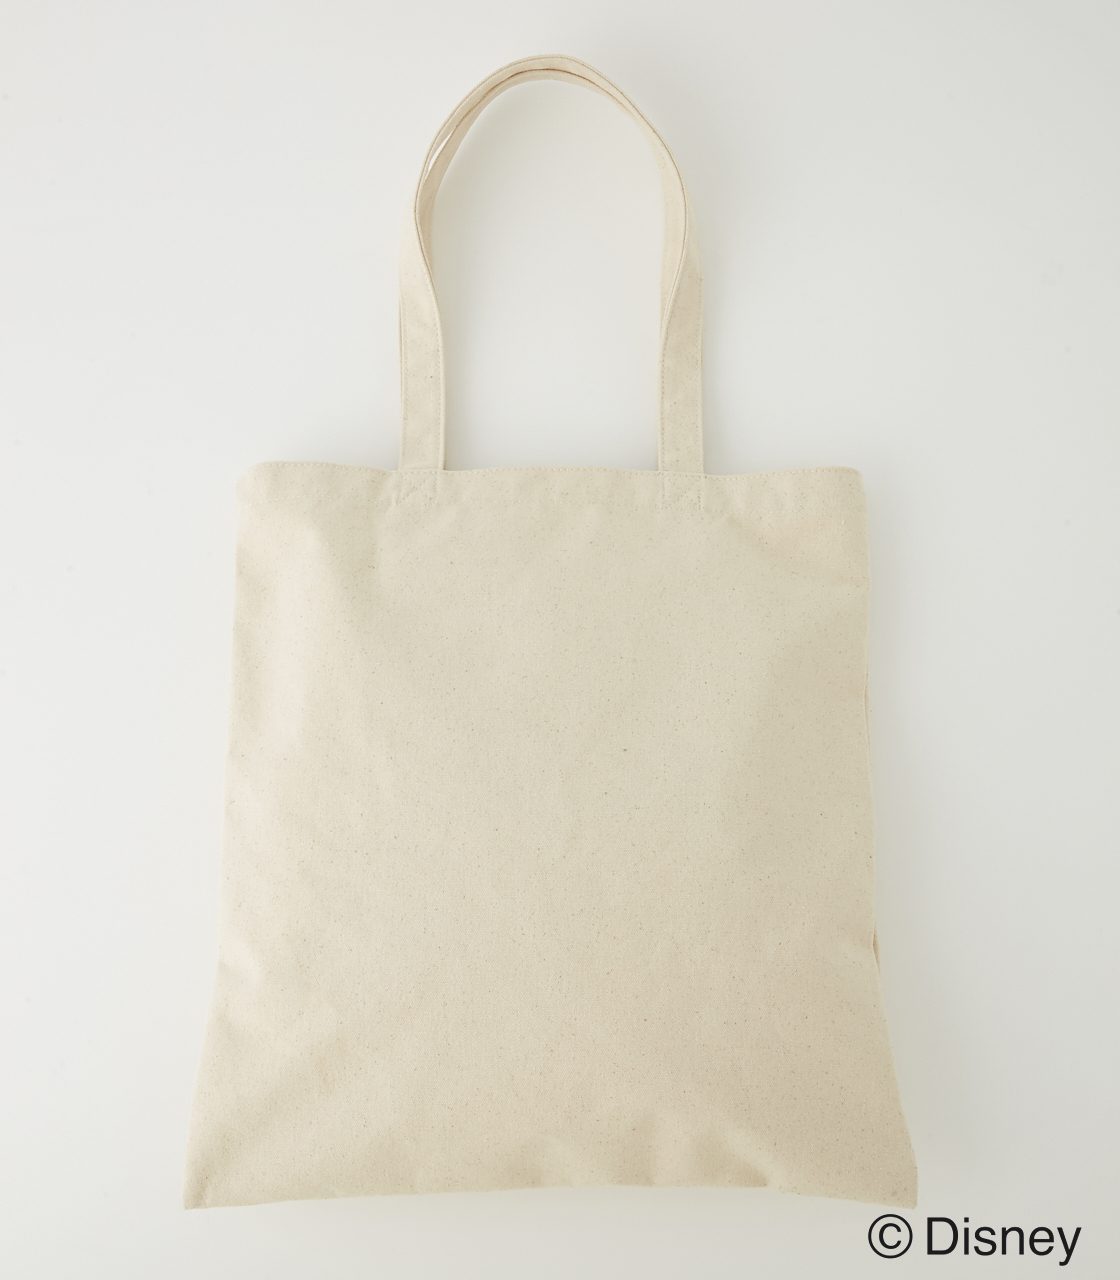 DONALD DUCK TOTE BAG/ドナルドダックトートバッグ 詳細画像 O/WHT 3